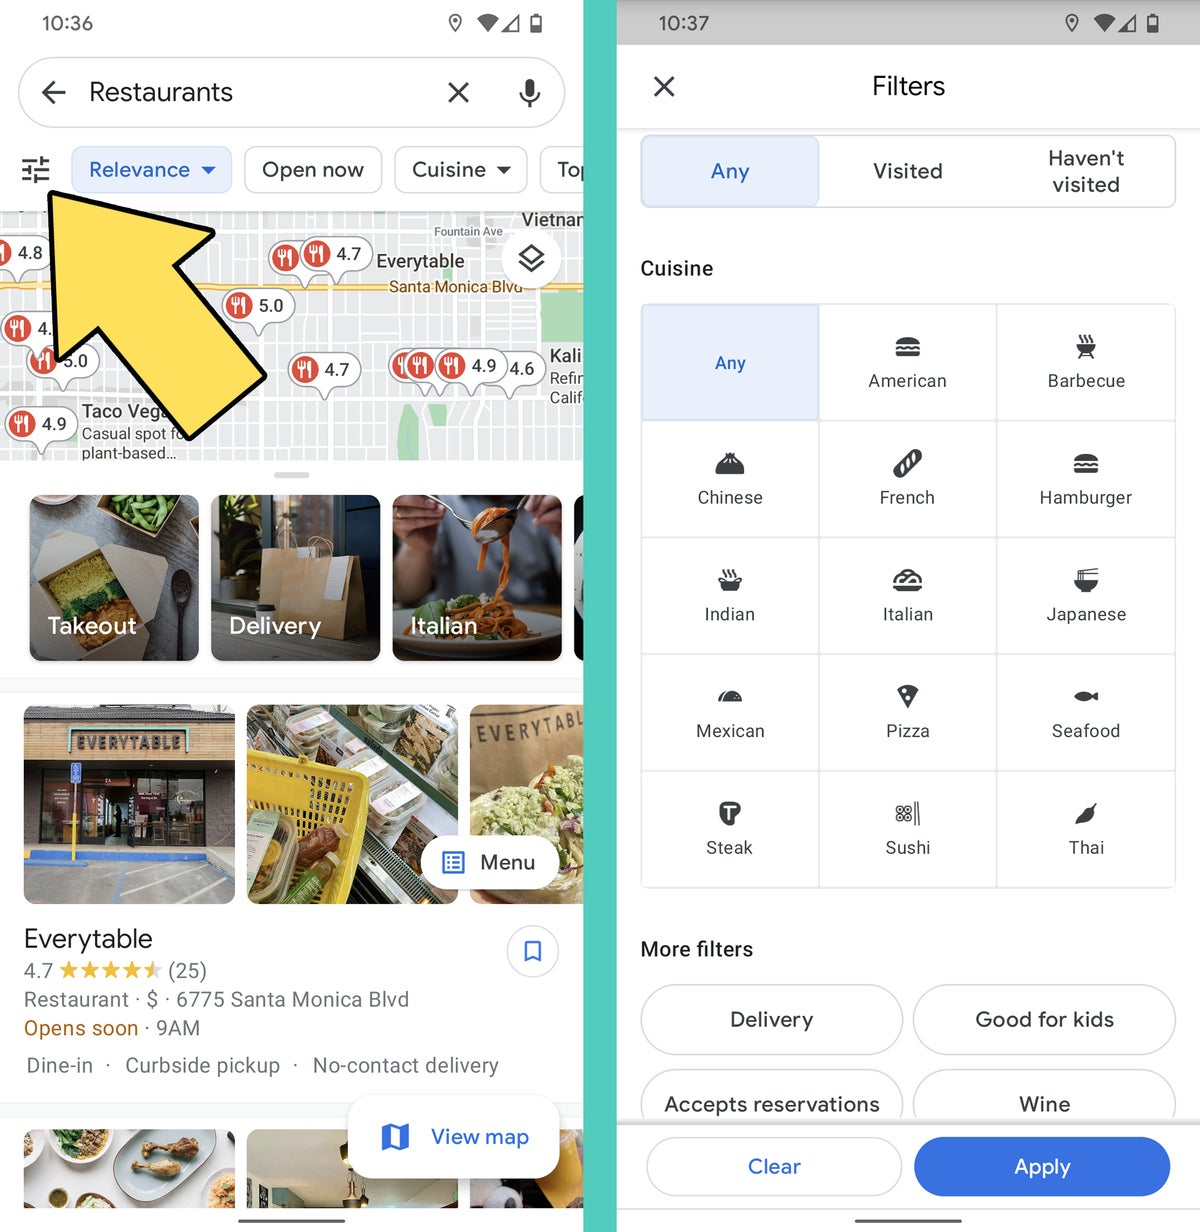 Google Maps Android: Restaurant filters